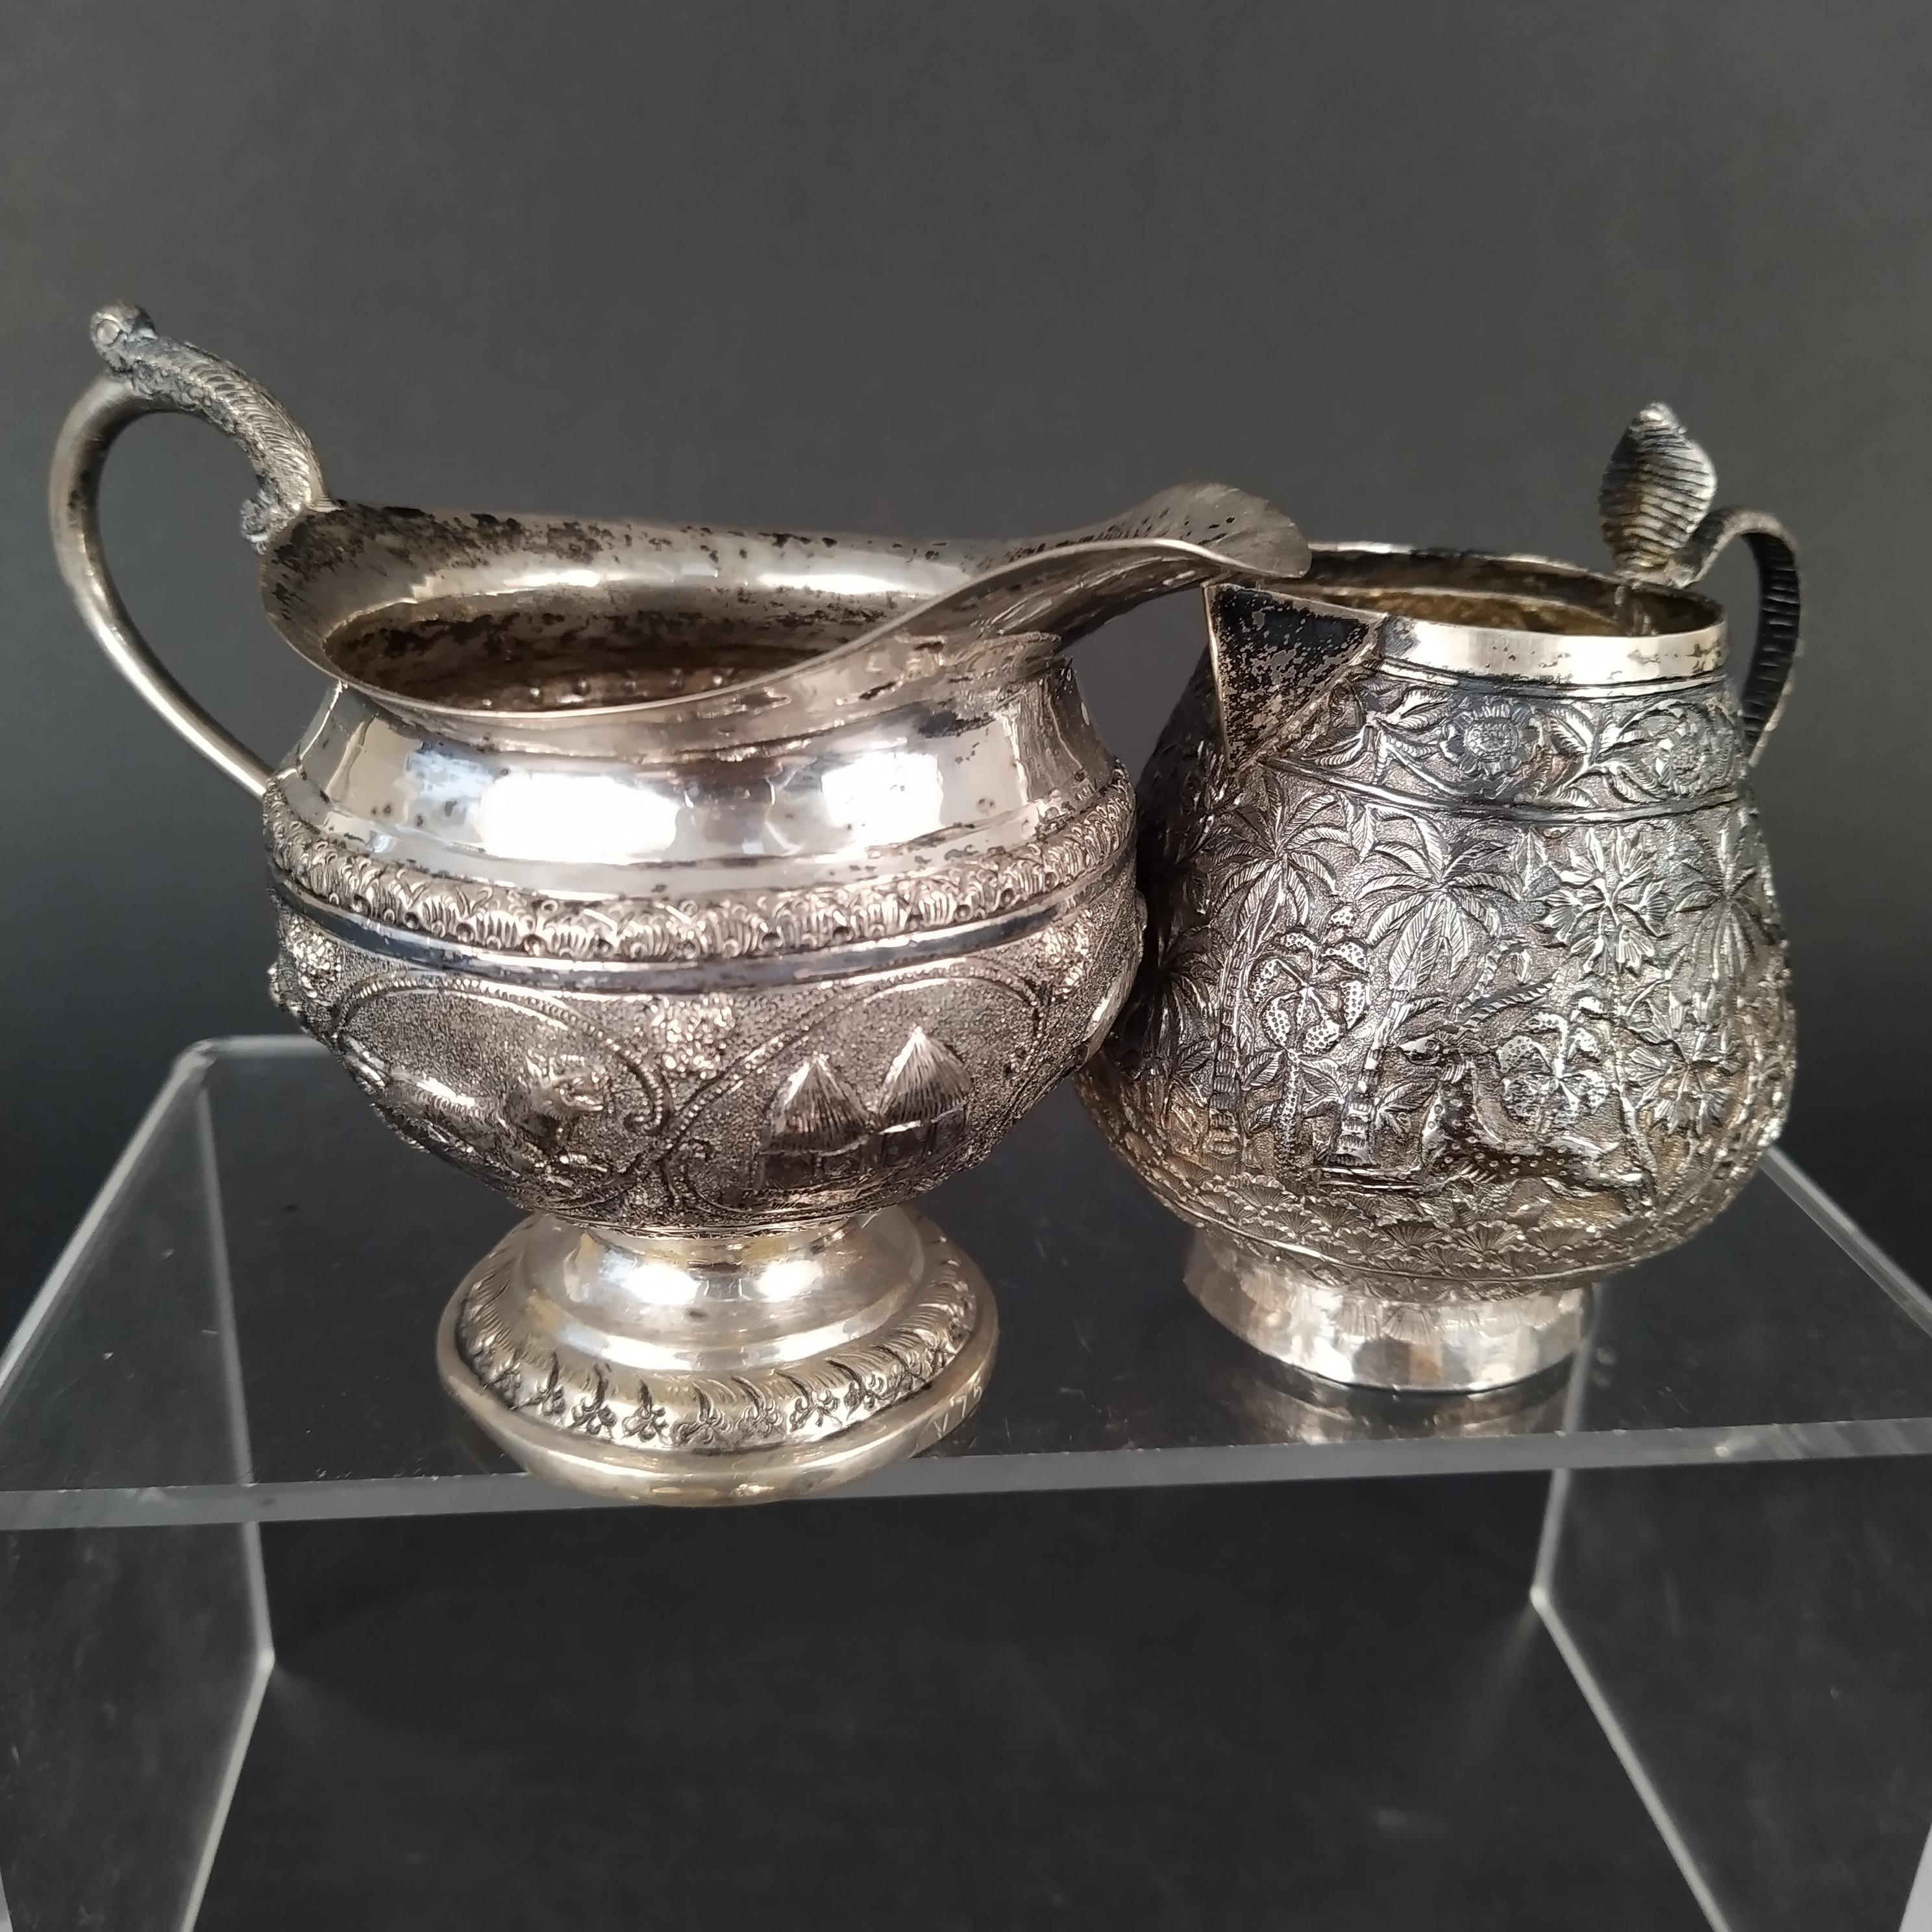 A mixed lot of Indian white metal items including jugs, - Image 3 of 3